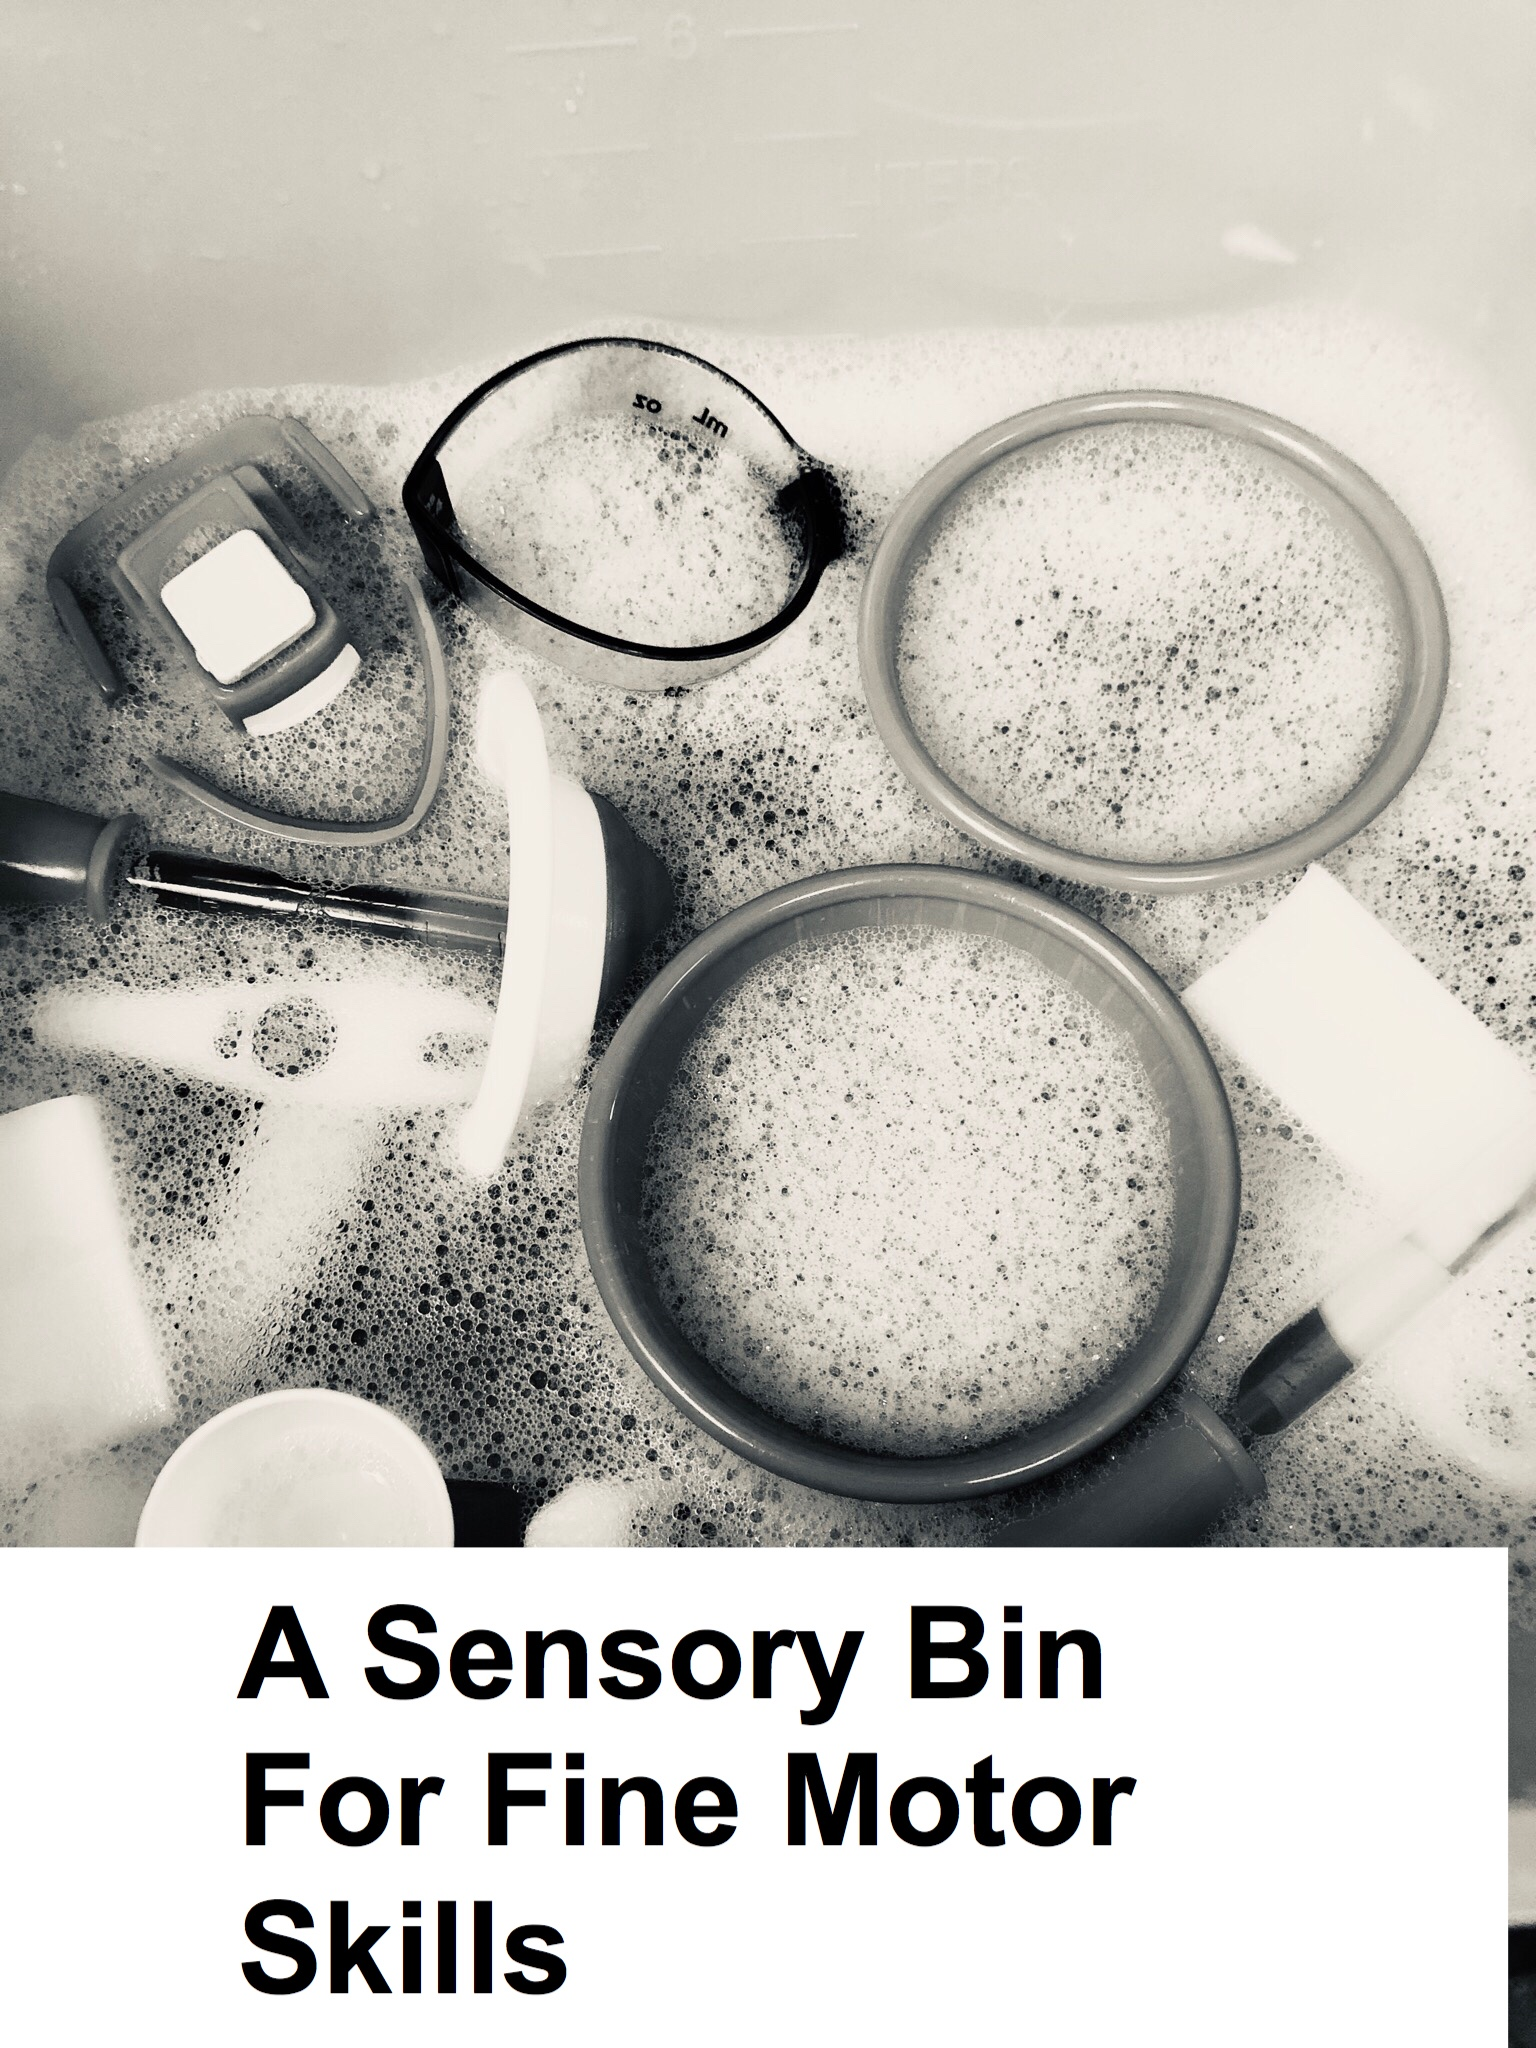 Sensory Bin for Fine Motor Skills pin.